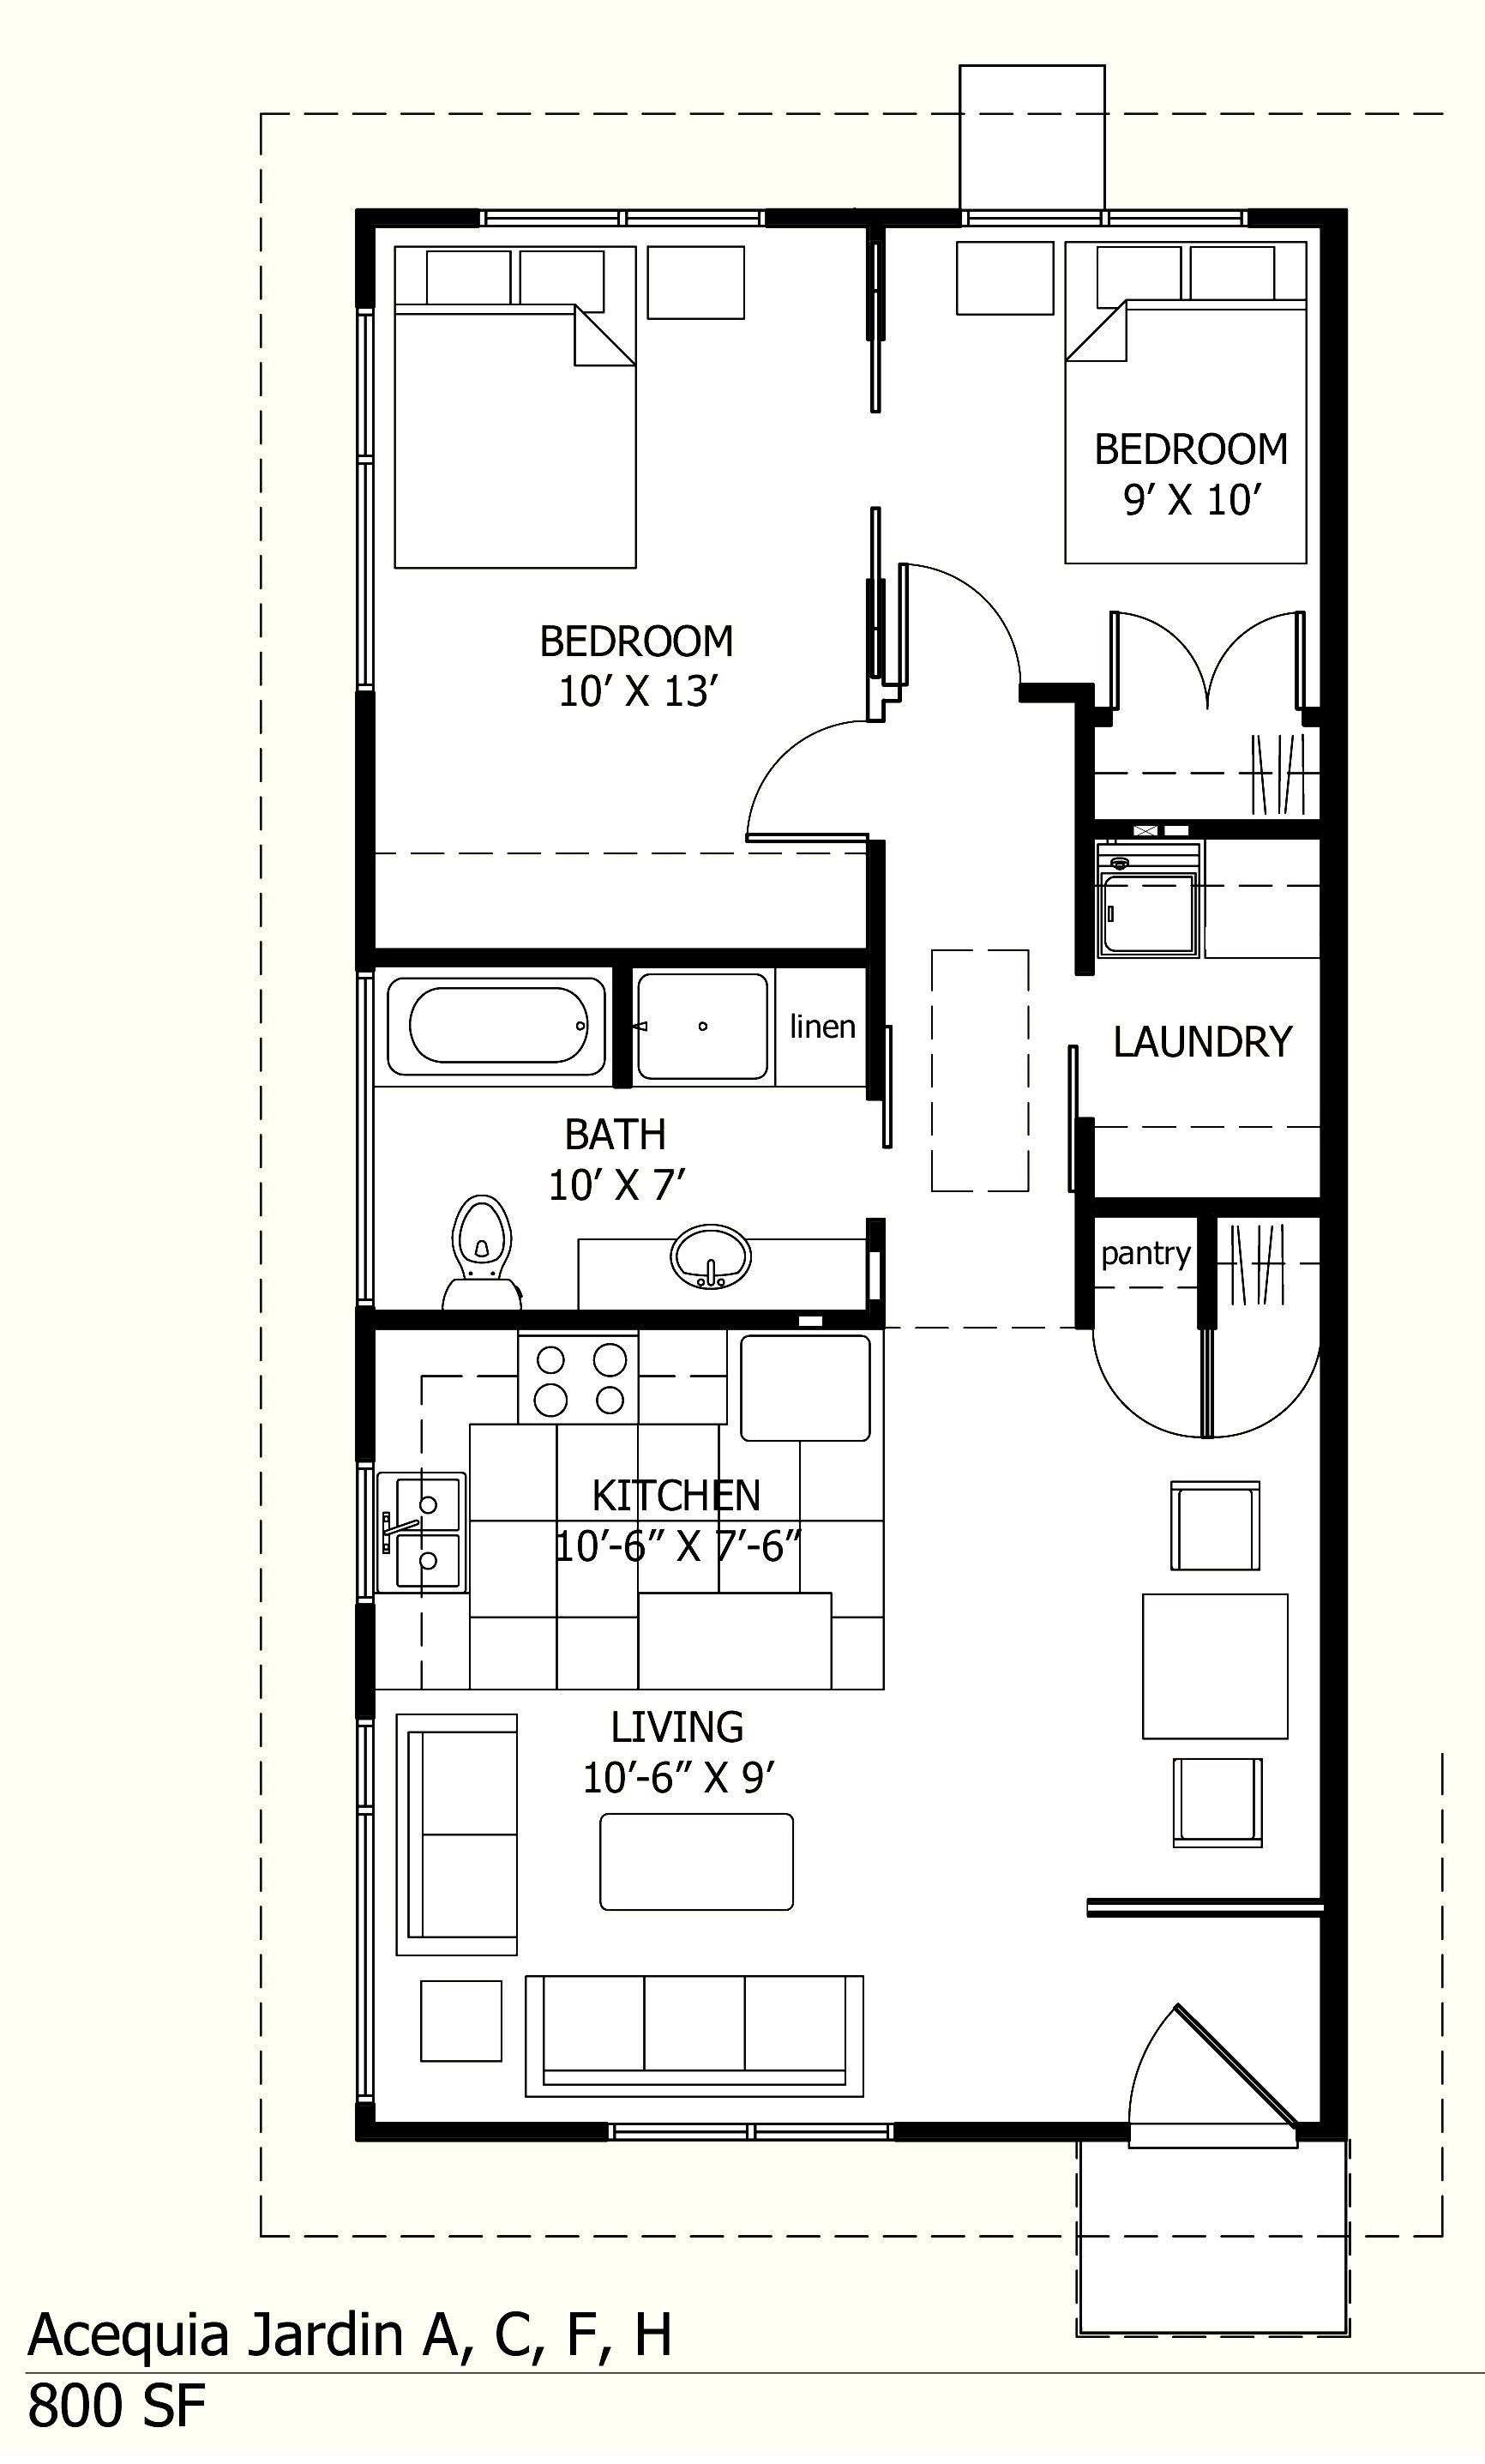 Draw Your Own House Plans Luxury 800 Sq Ft